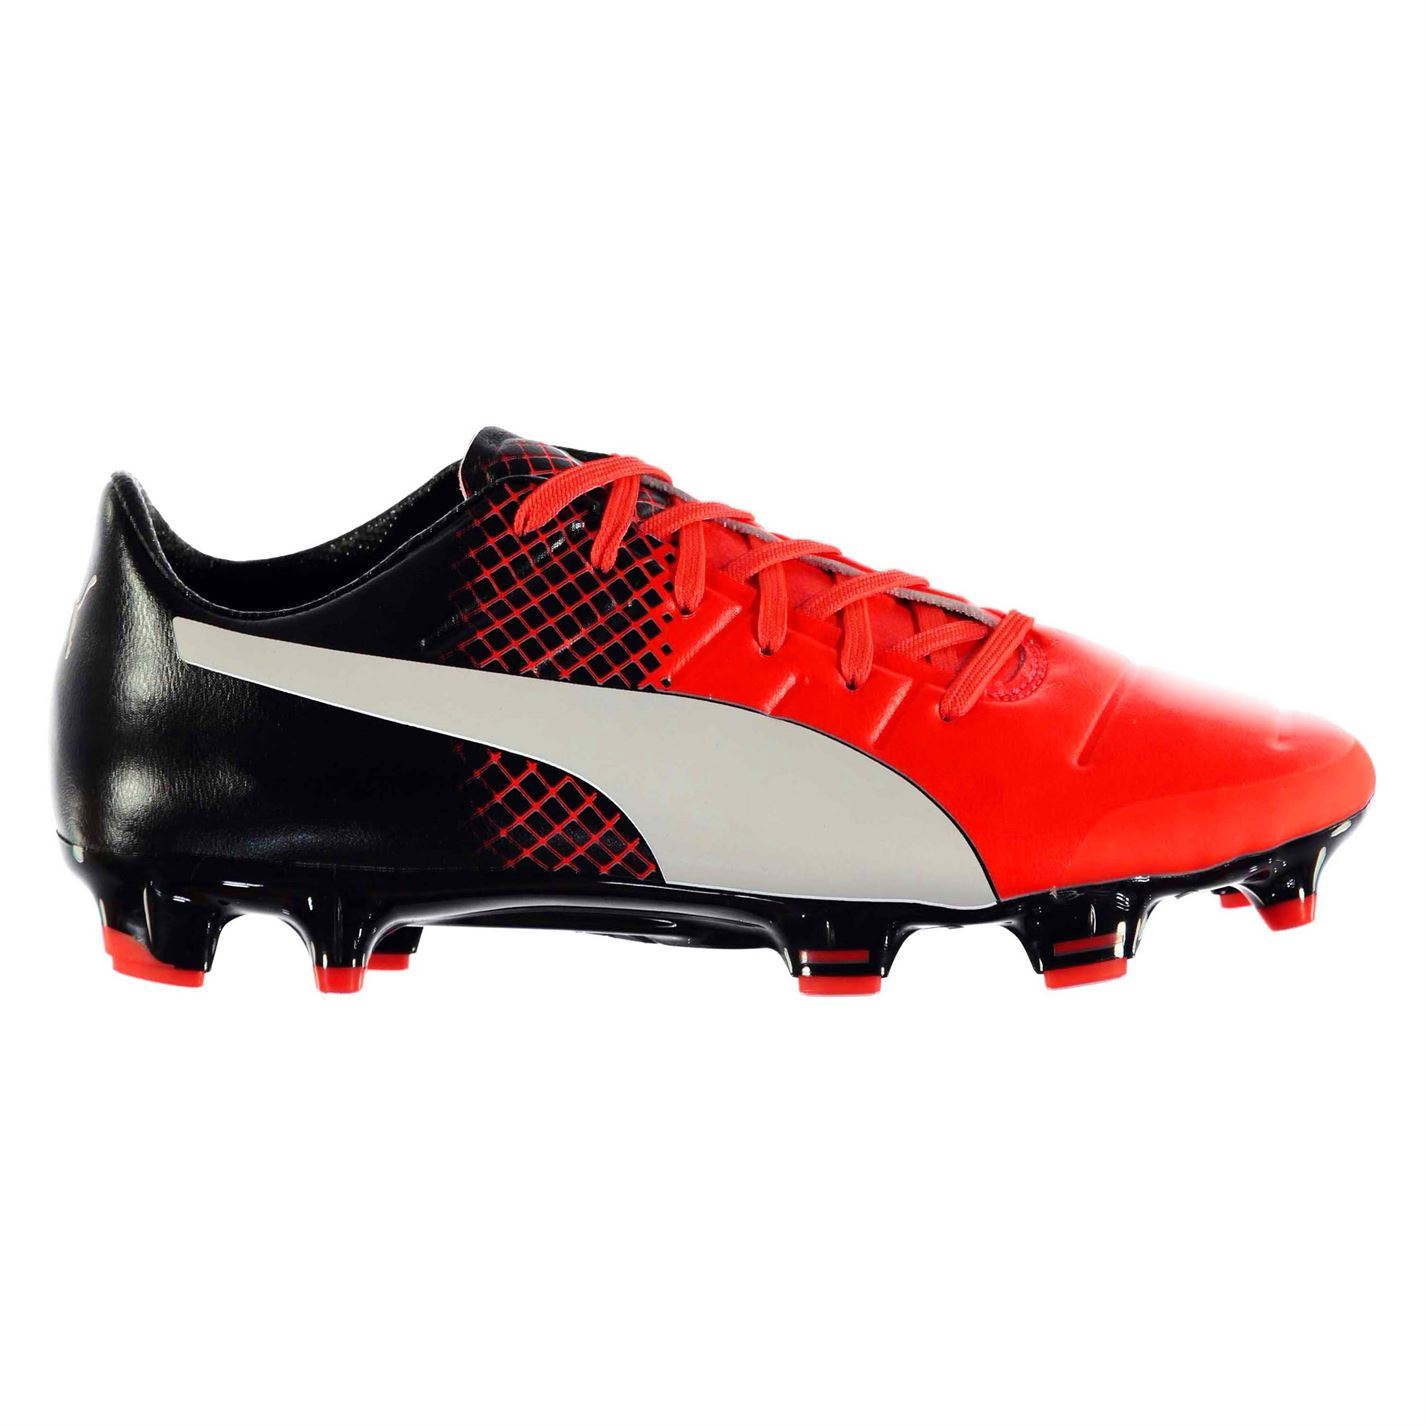 278b779cb59a Details about Puma Evo Power 2.3 FG Firm Ground Football Boots Mens Rd Blk  Soccer Cleats Shoes